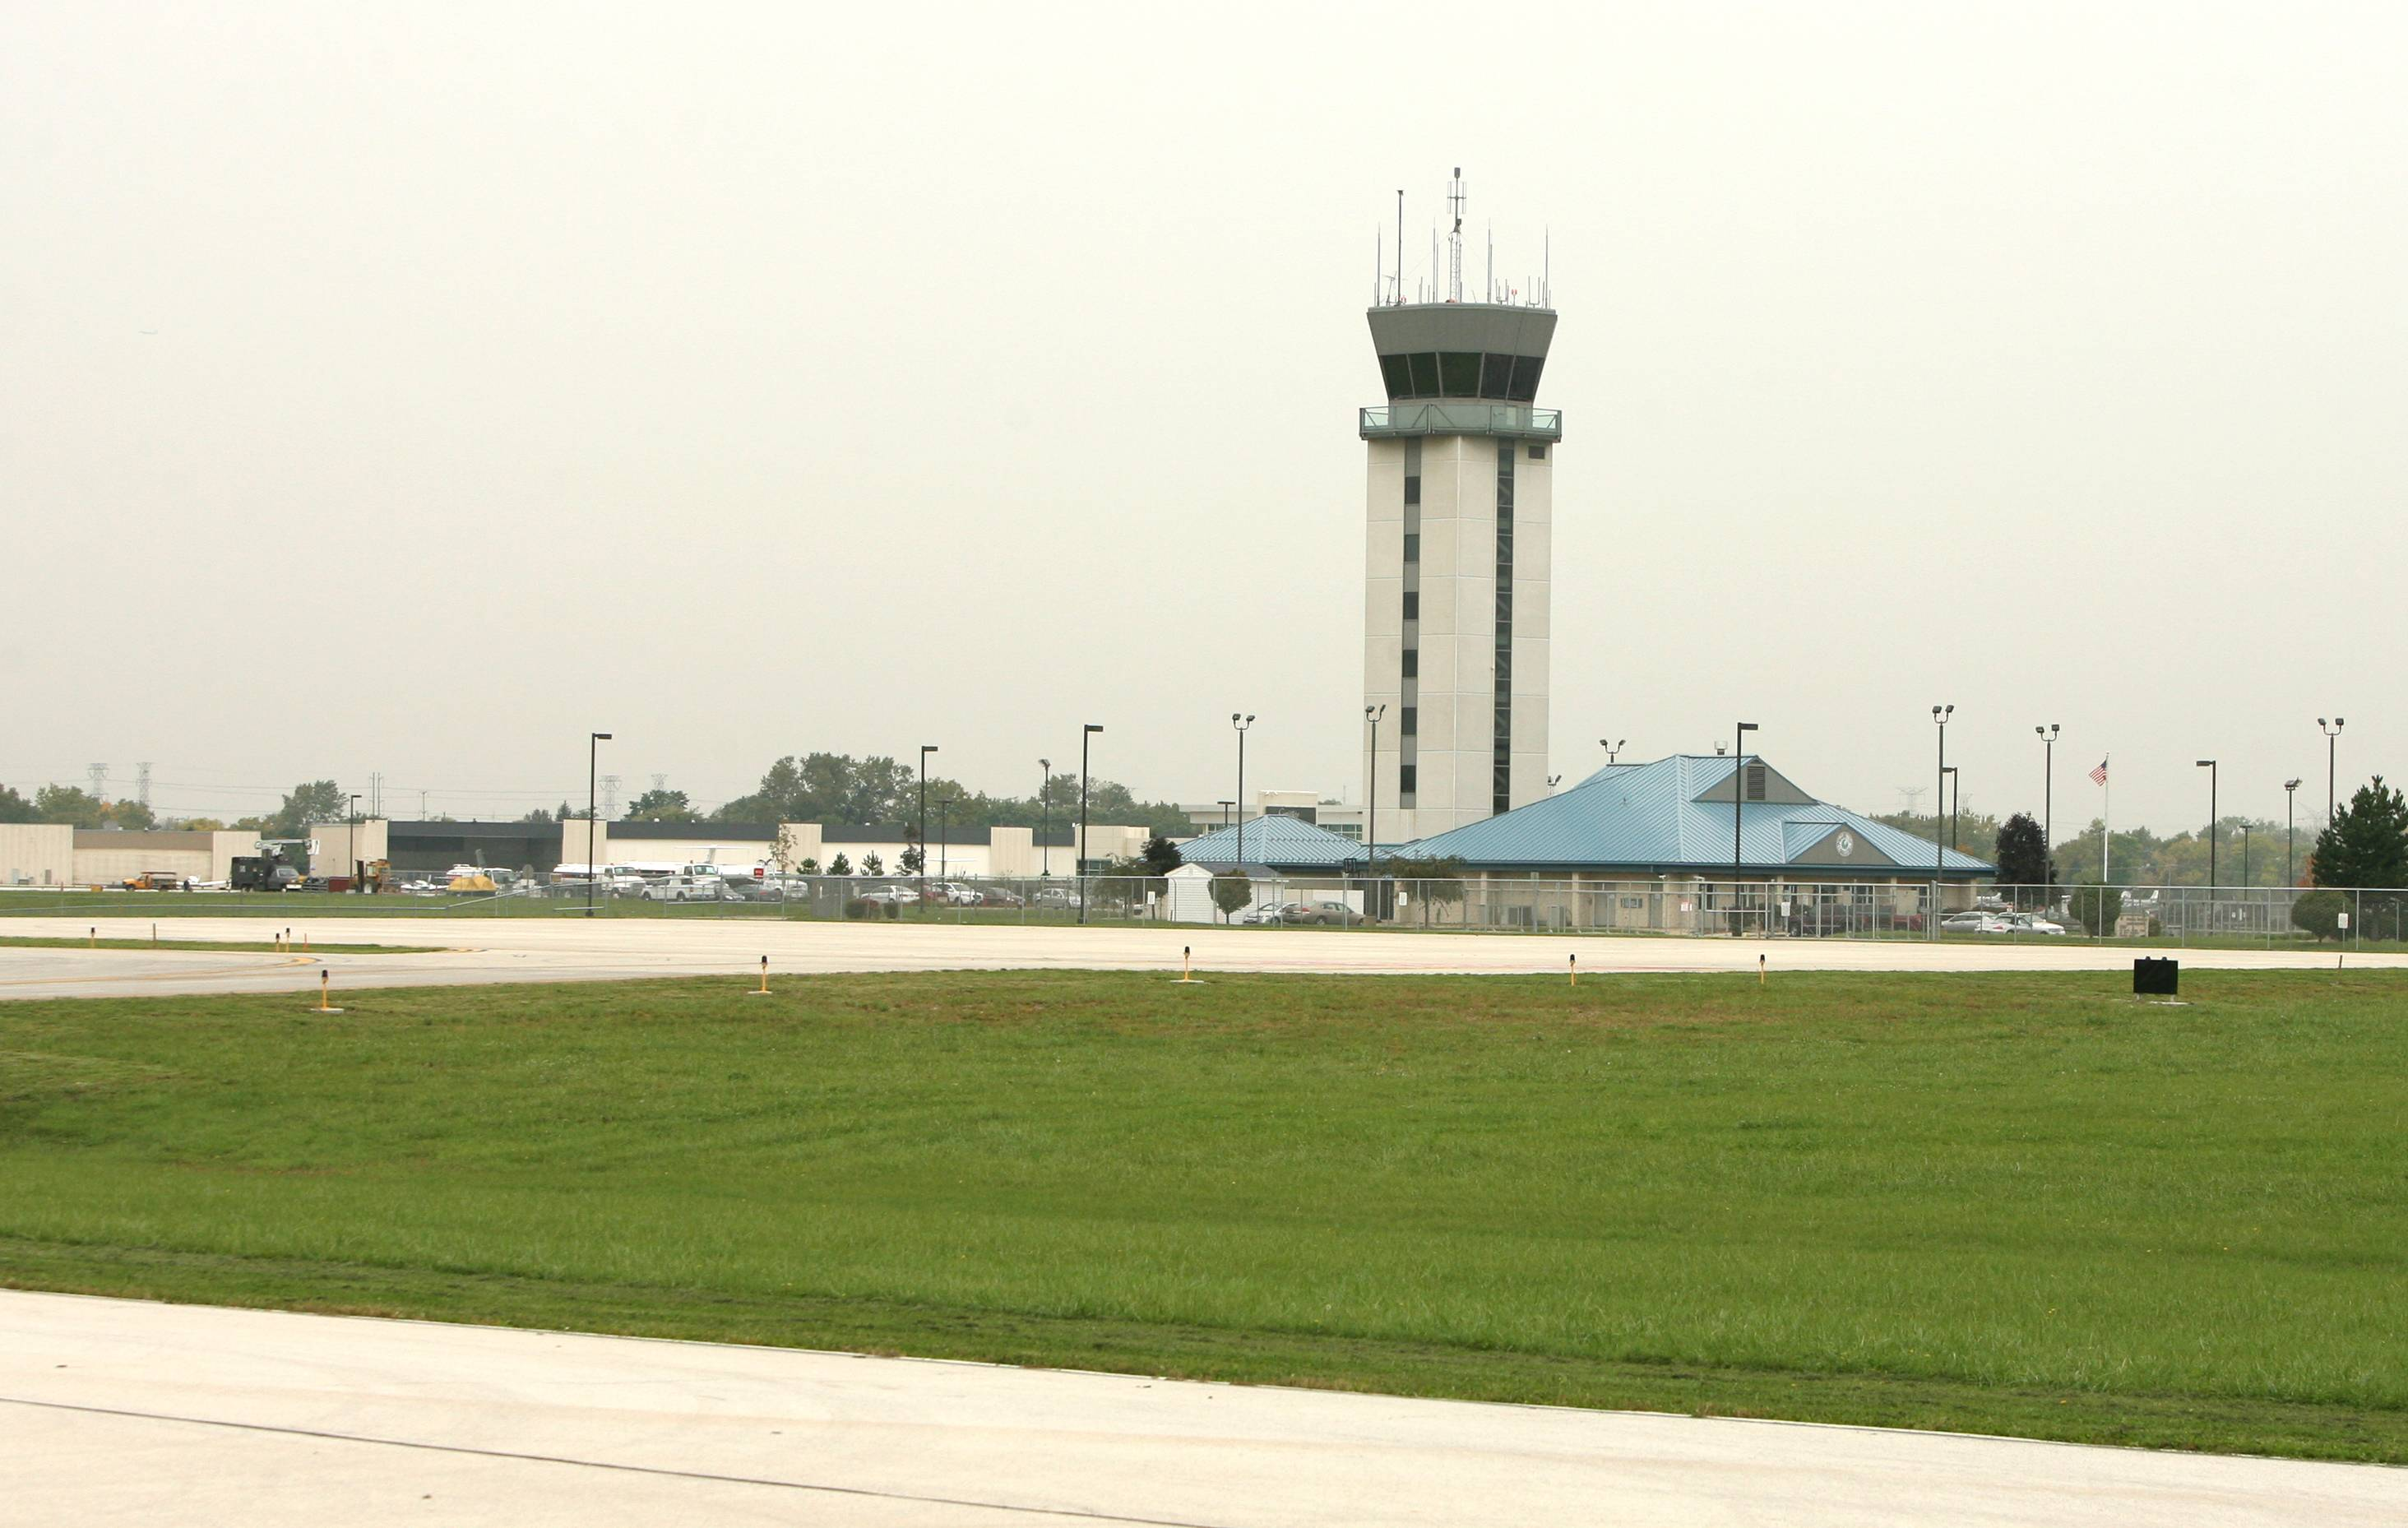 In the Roaring Twenties, Chicago Executive Airport in Wheeling was a grassy 40-acre plot, with dirt and sod runways, known as Gauthier's Flying Field.